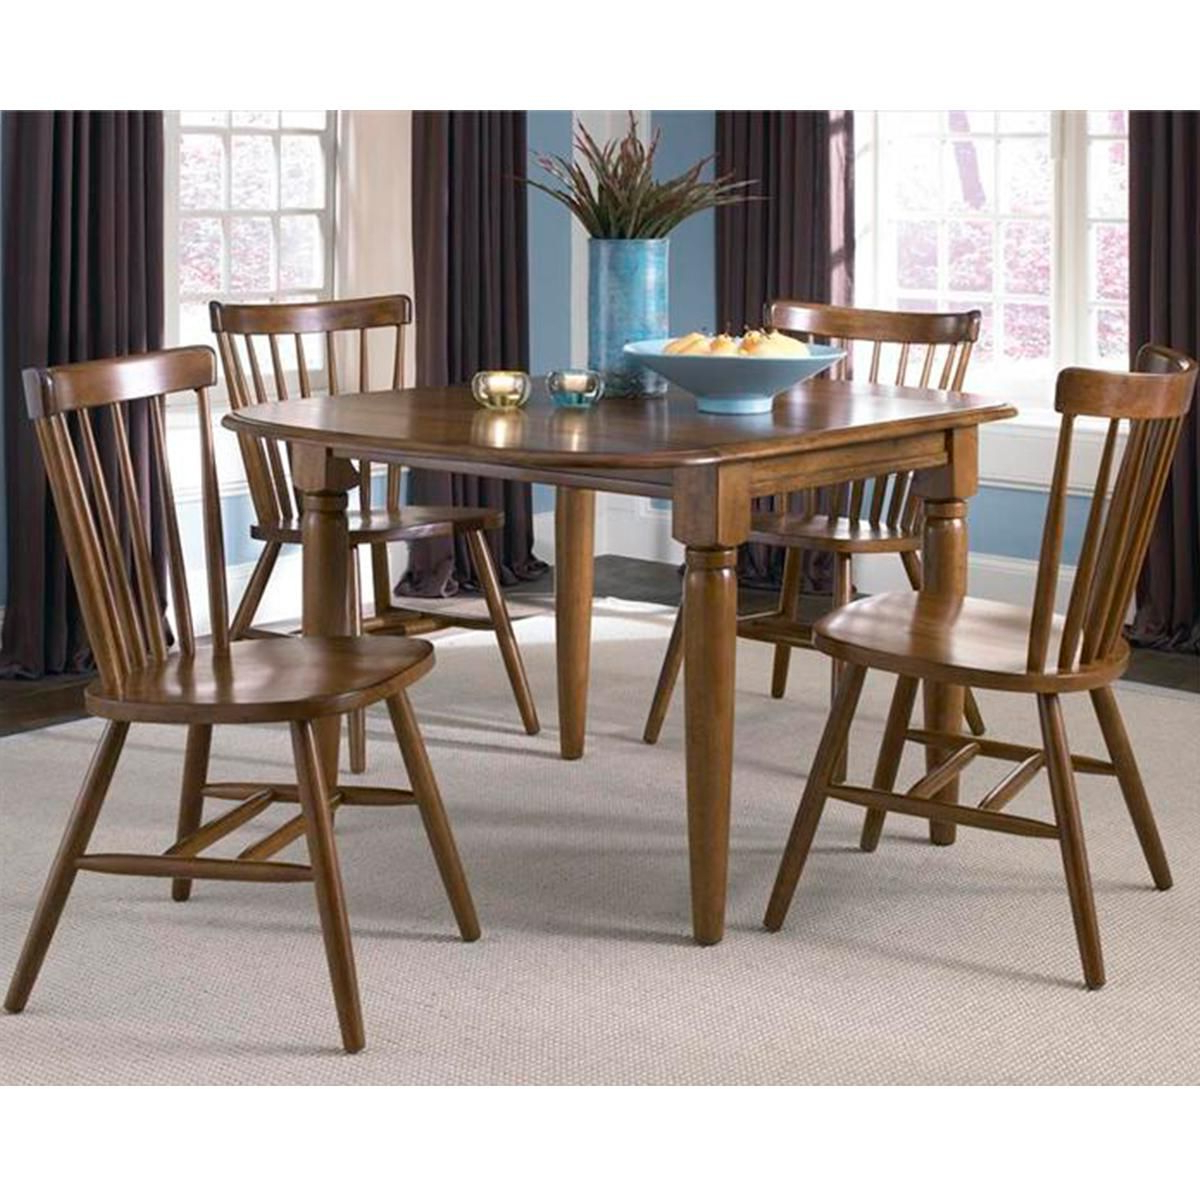 Famous Creations Ii Drop Leaf Table In Tobacco – Table Only With Regard To Transitional 4 Seating Double Drop Leaf Casual Dining Tables (View 6 of 25)